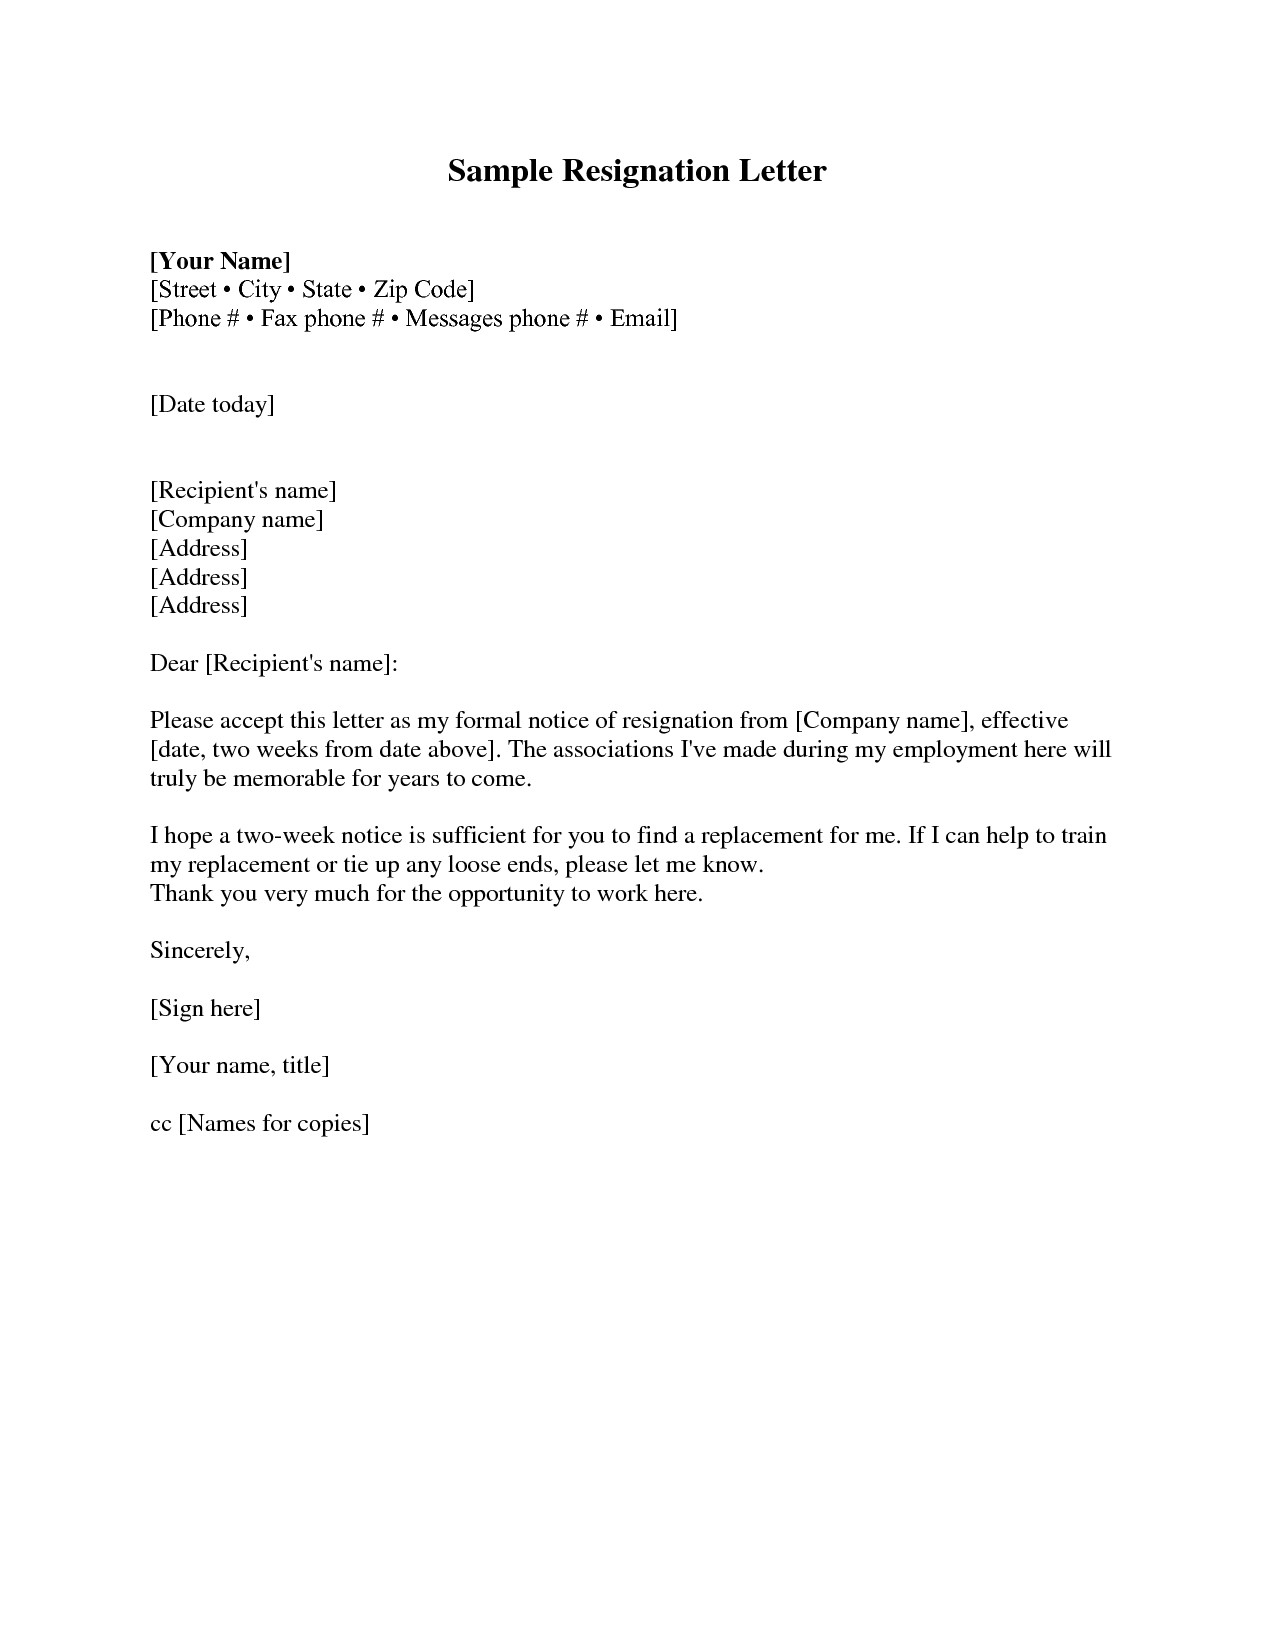 Resignation Letter format Template - Resignation Letter Examples 2 Weeks Notice Acurnamedia